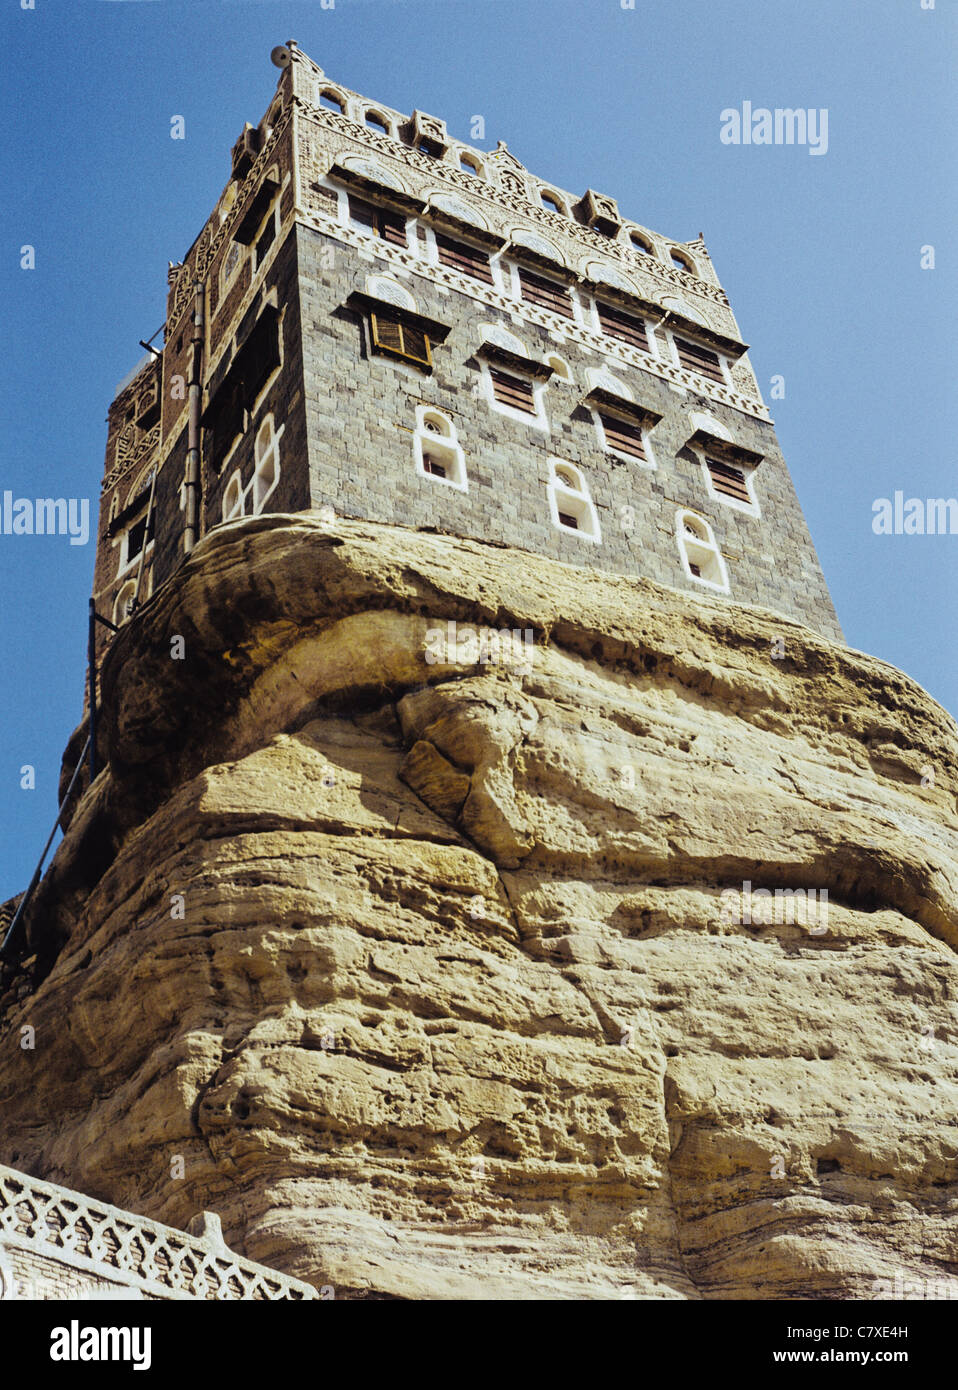 Dar al-Hajar (Rock Palace) in the valley of Wadi Dahr, Yemen - The Palace was built as a summer home for Imam Yahya - Stock Image